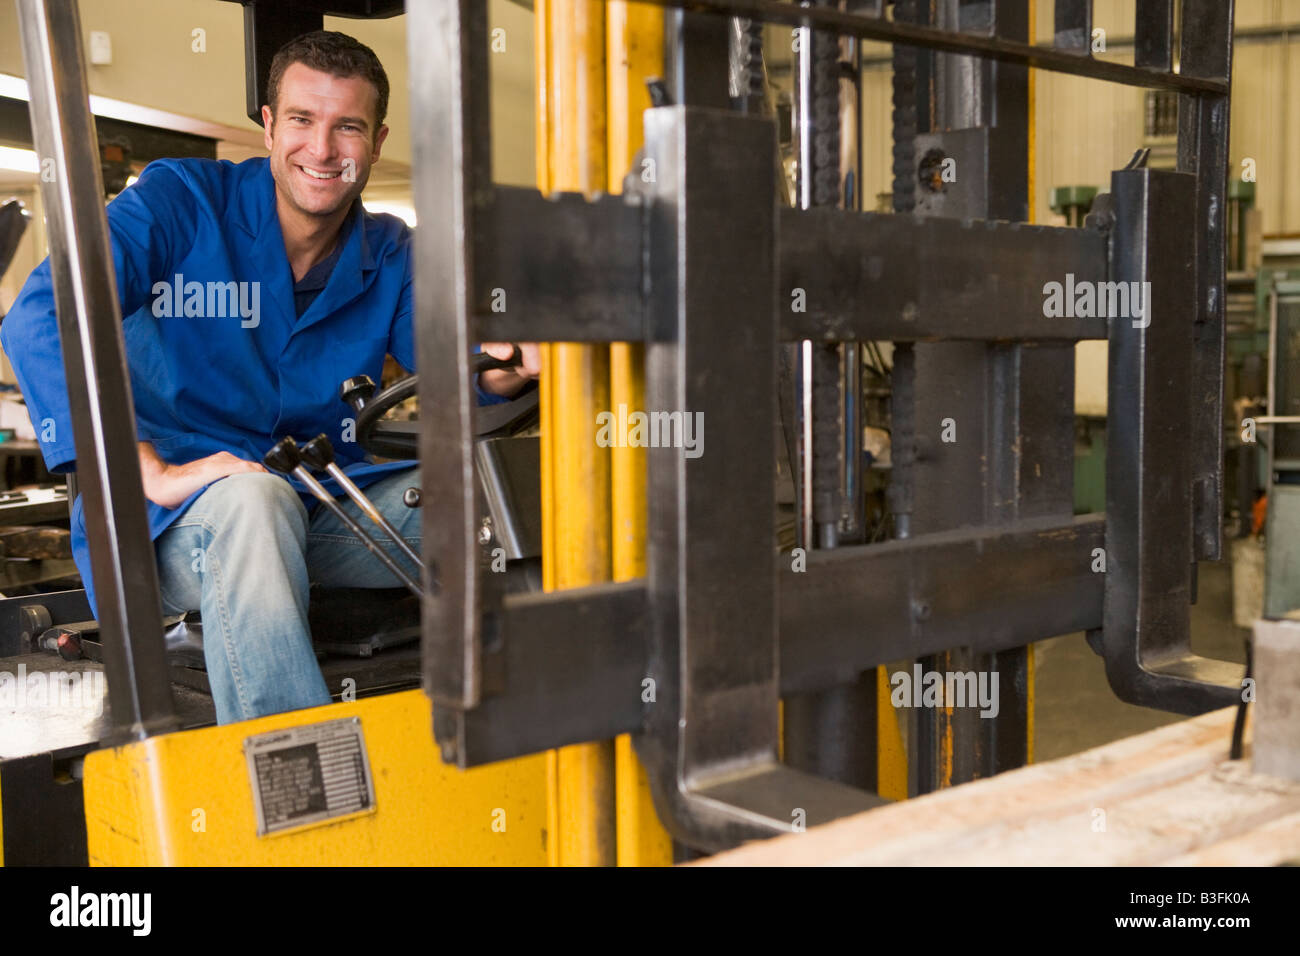 Warehouse worker in forklift - Stock Image